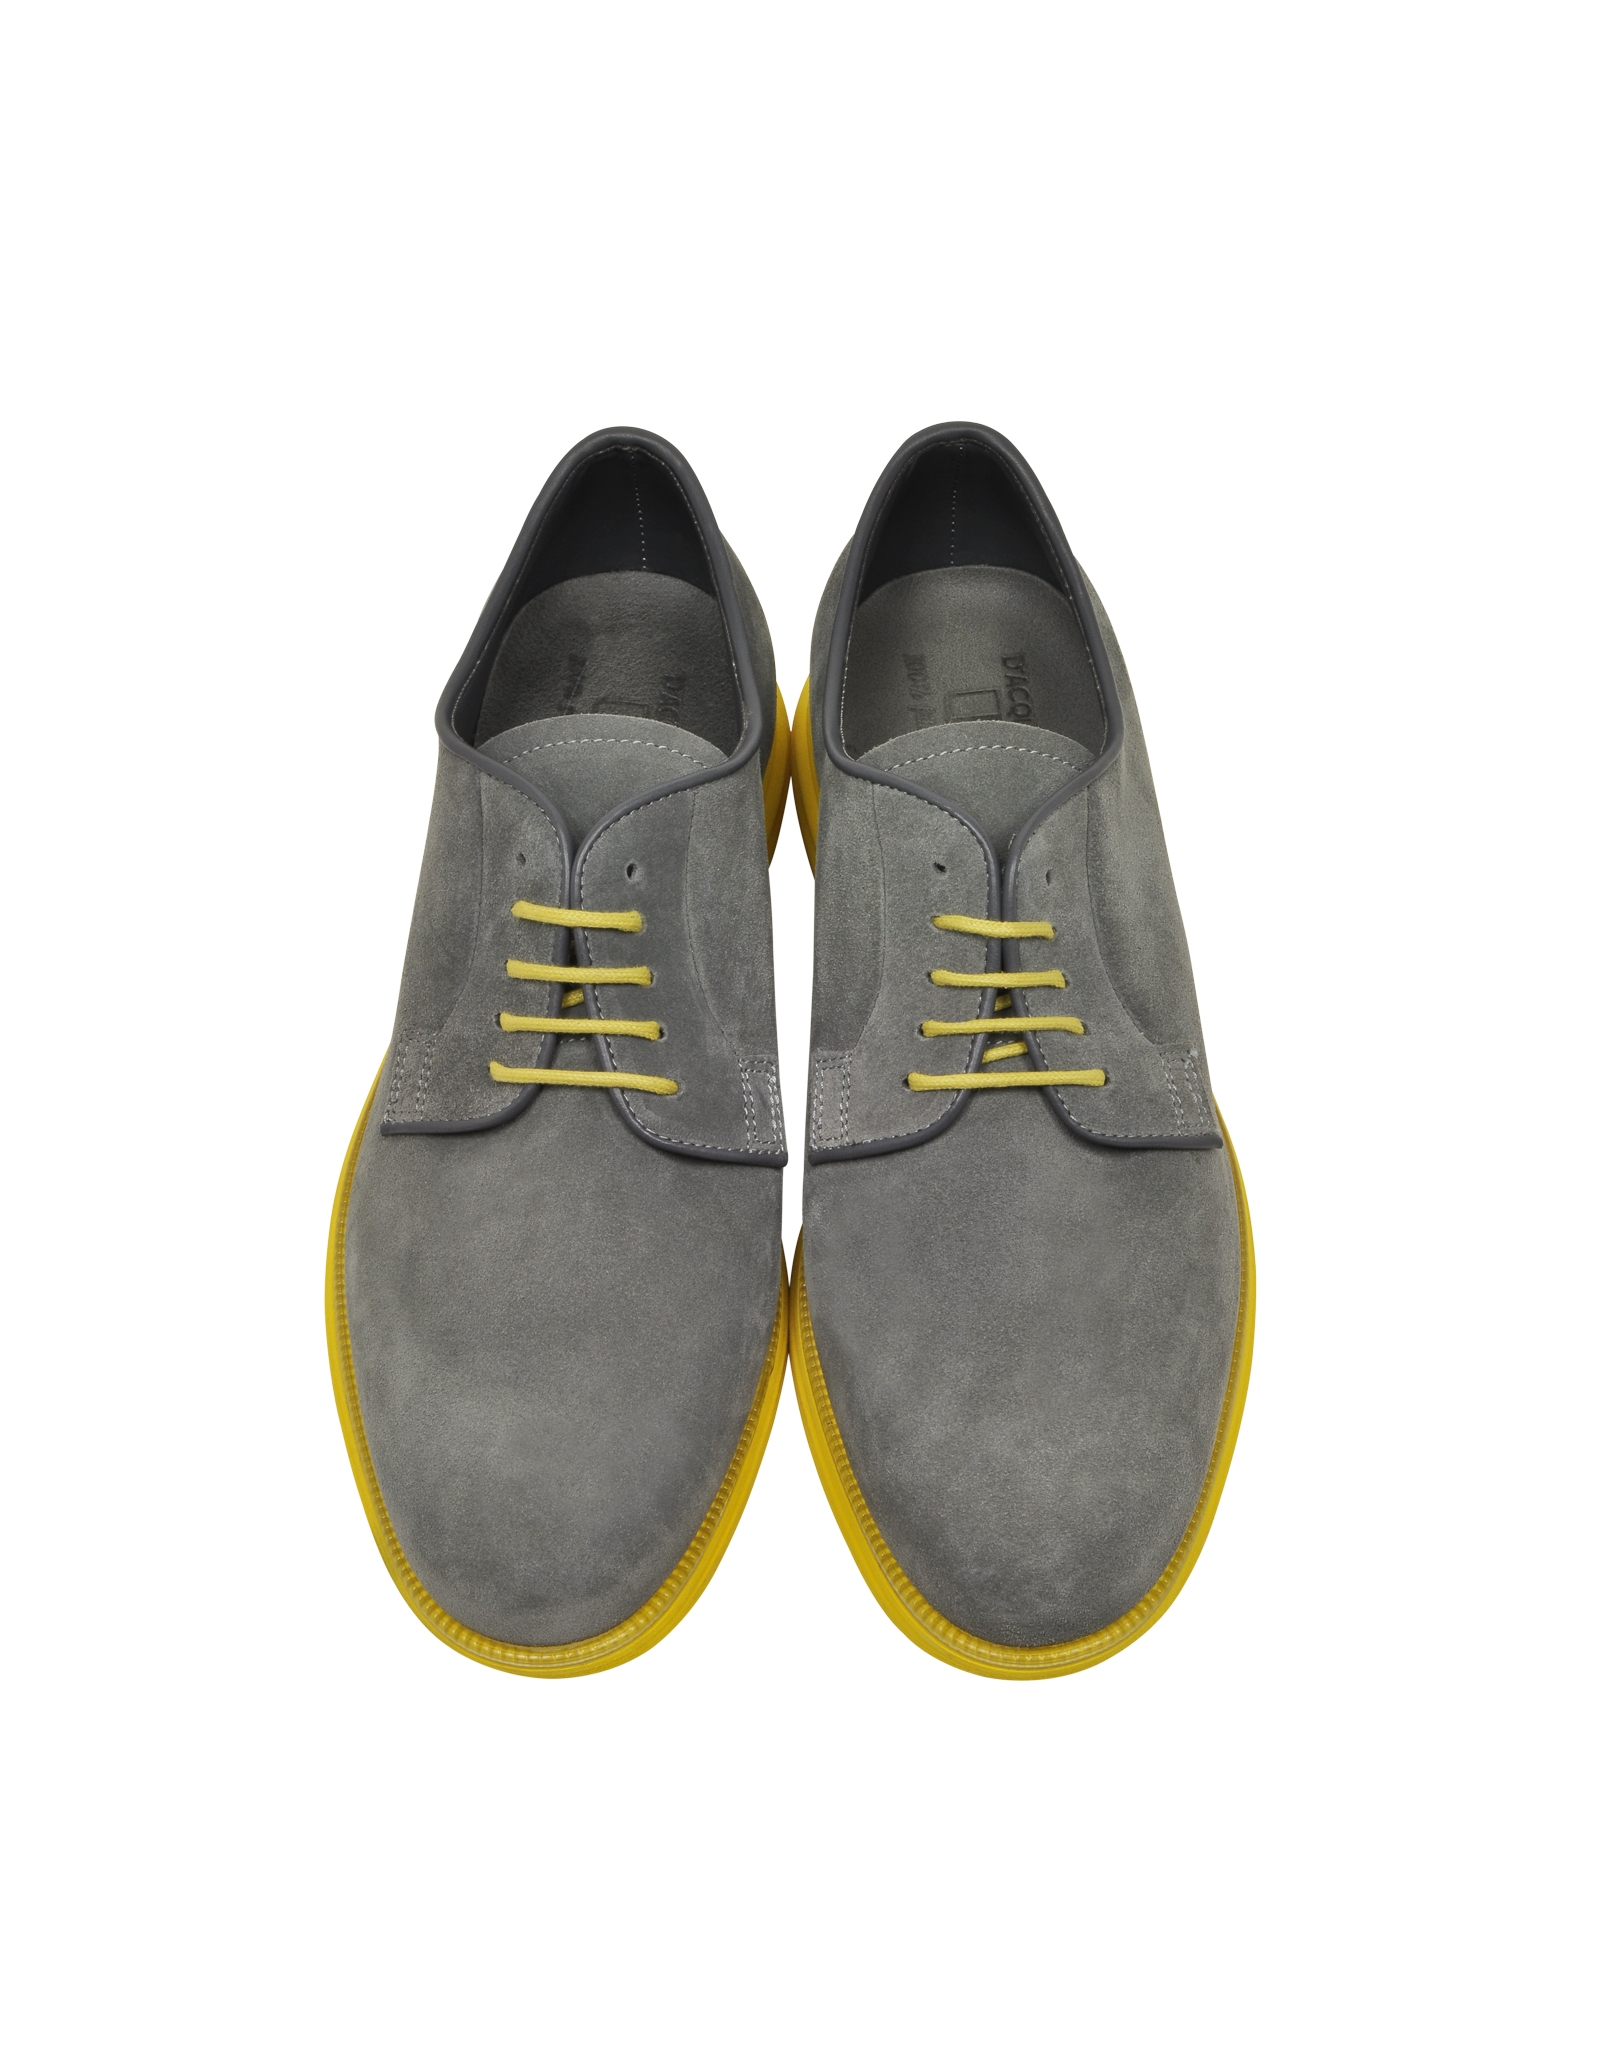 Lyst D Acquasparta Gray Suede Oxford W Yellow Rubber